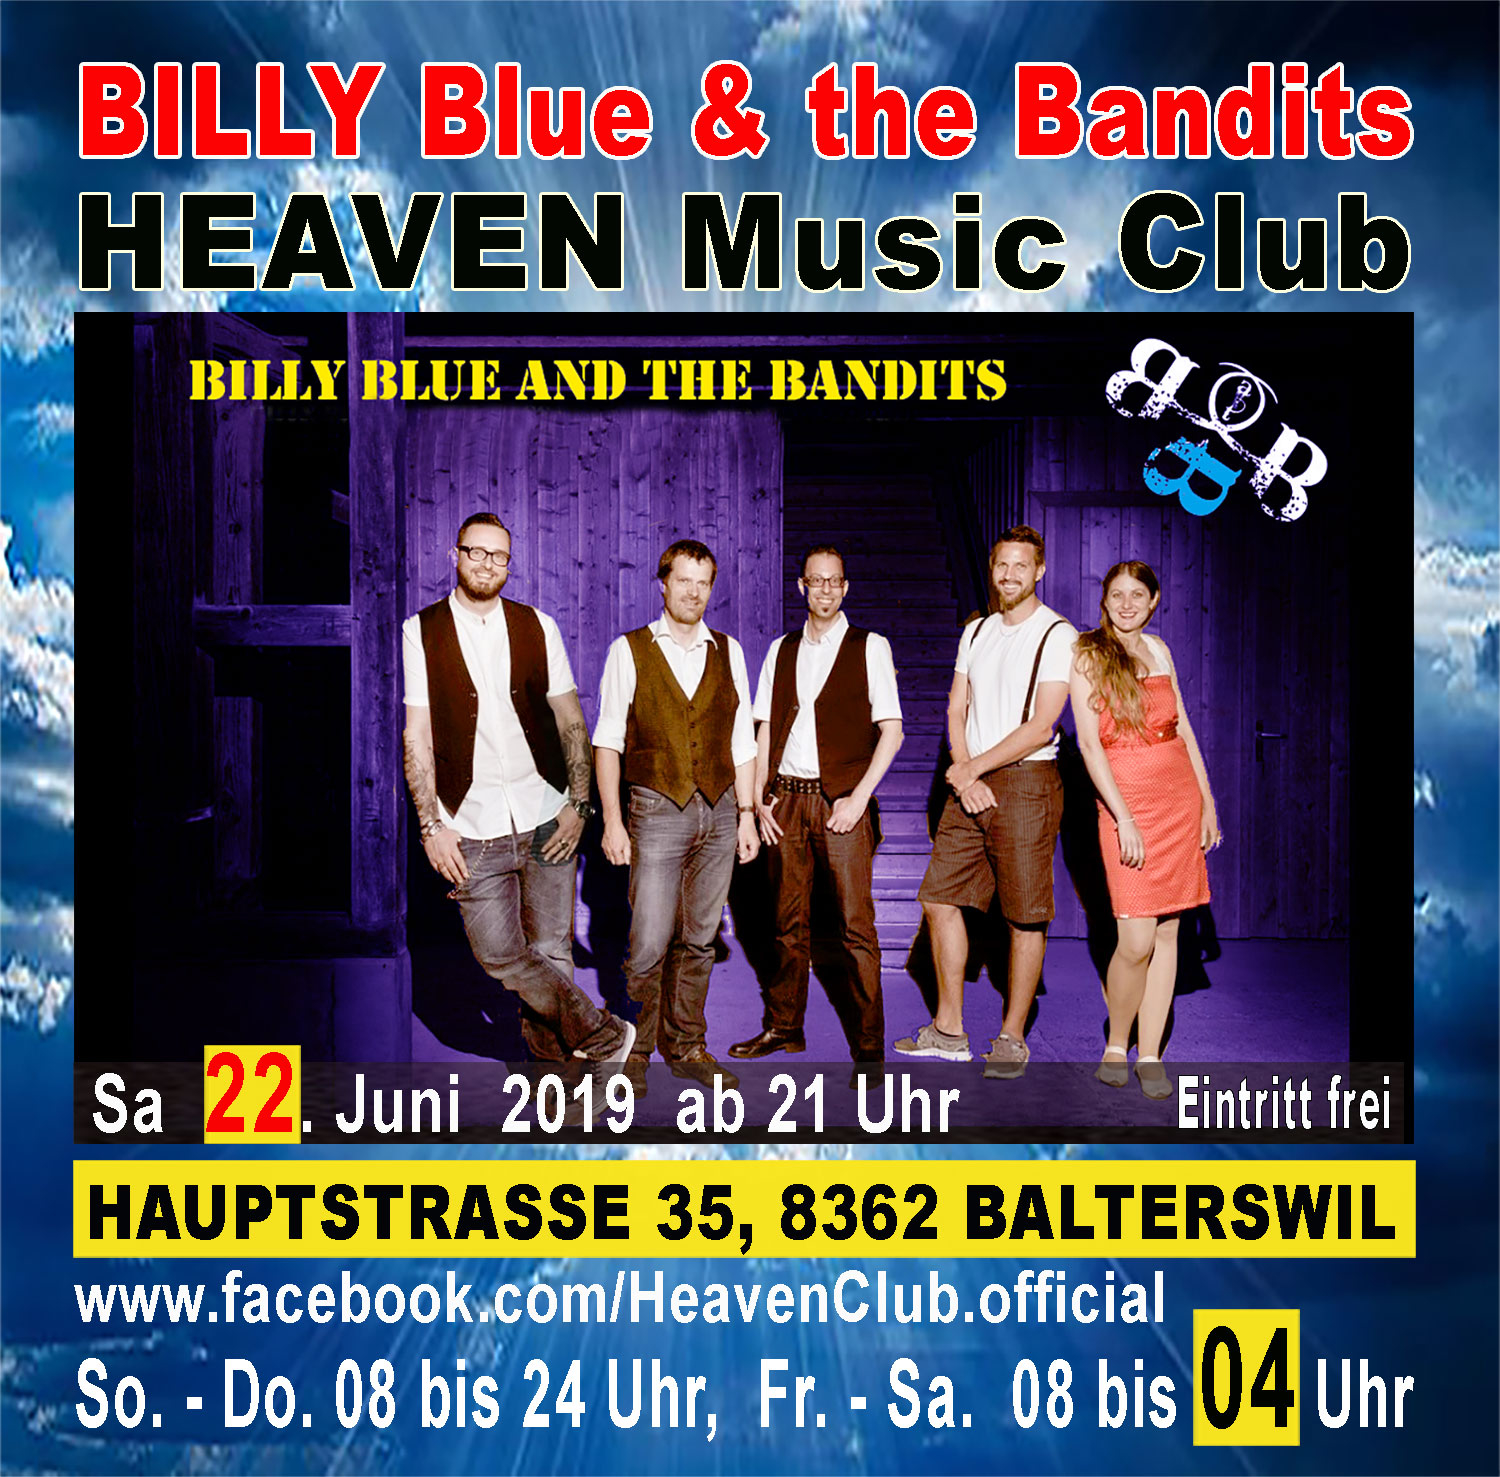 Billy Blue and the Bandits live